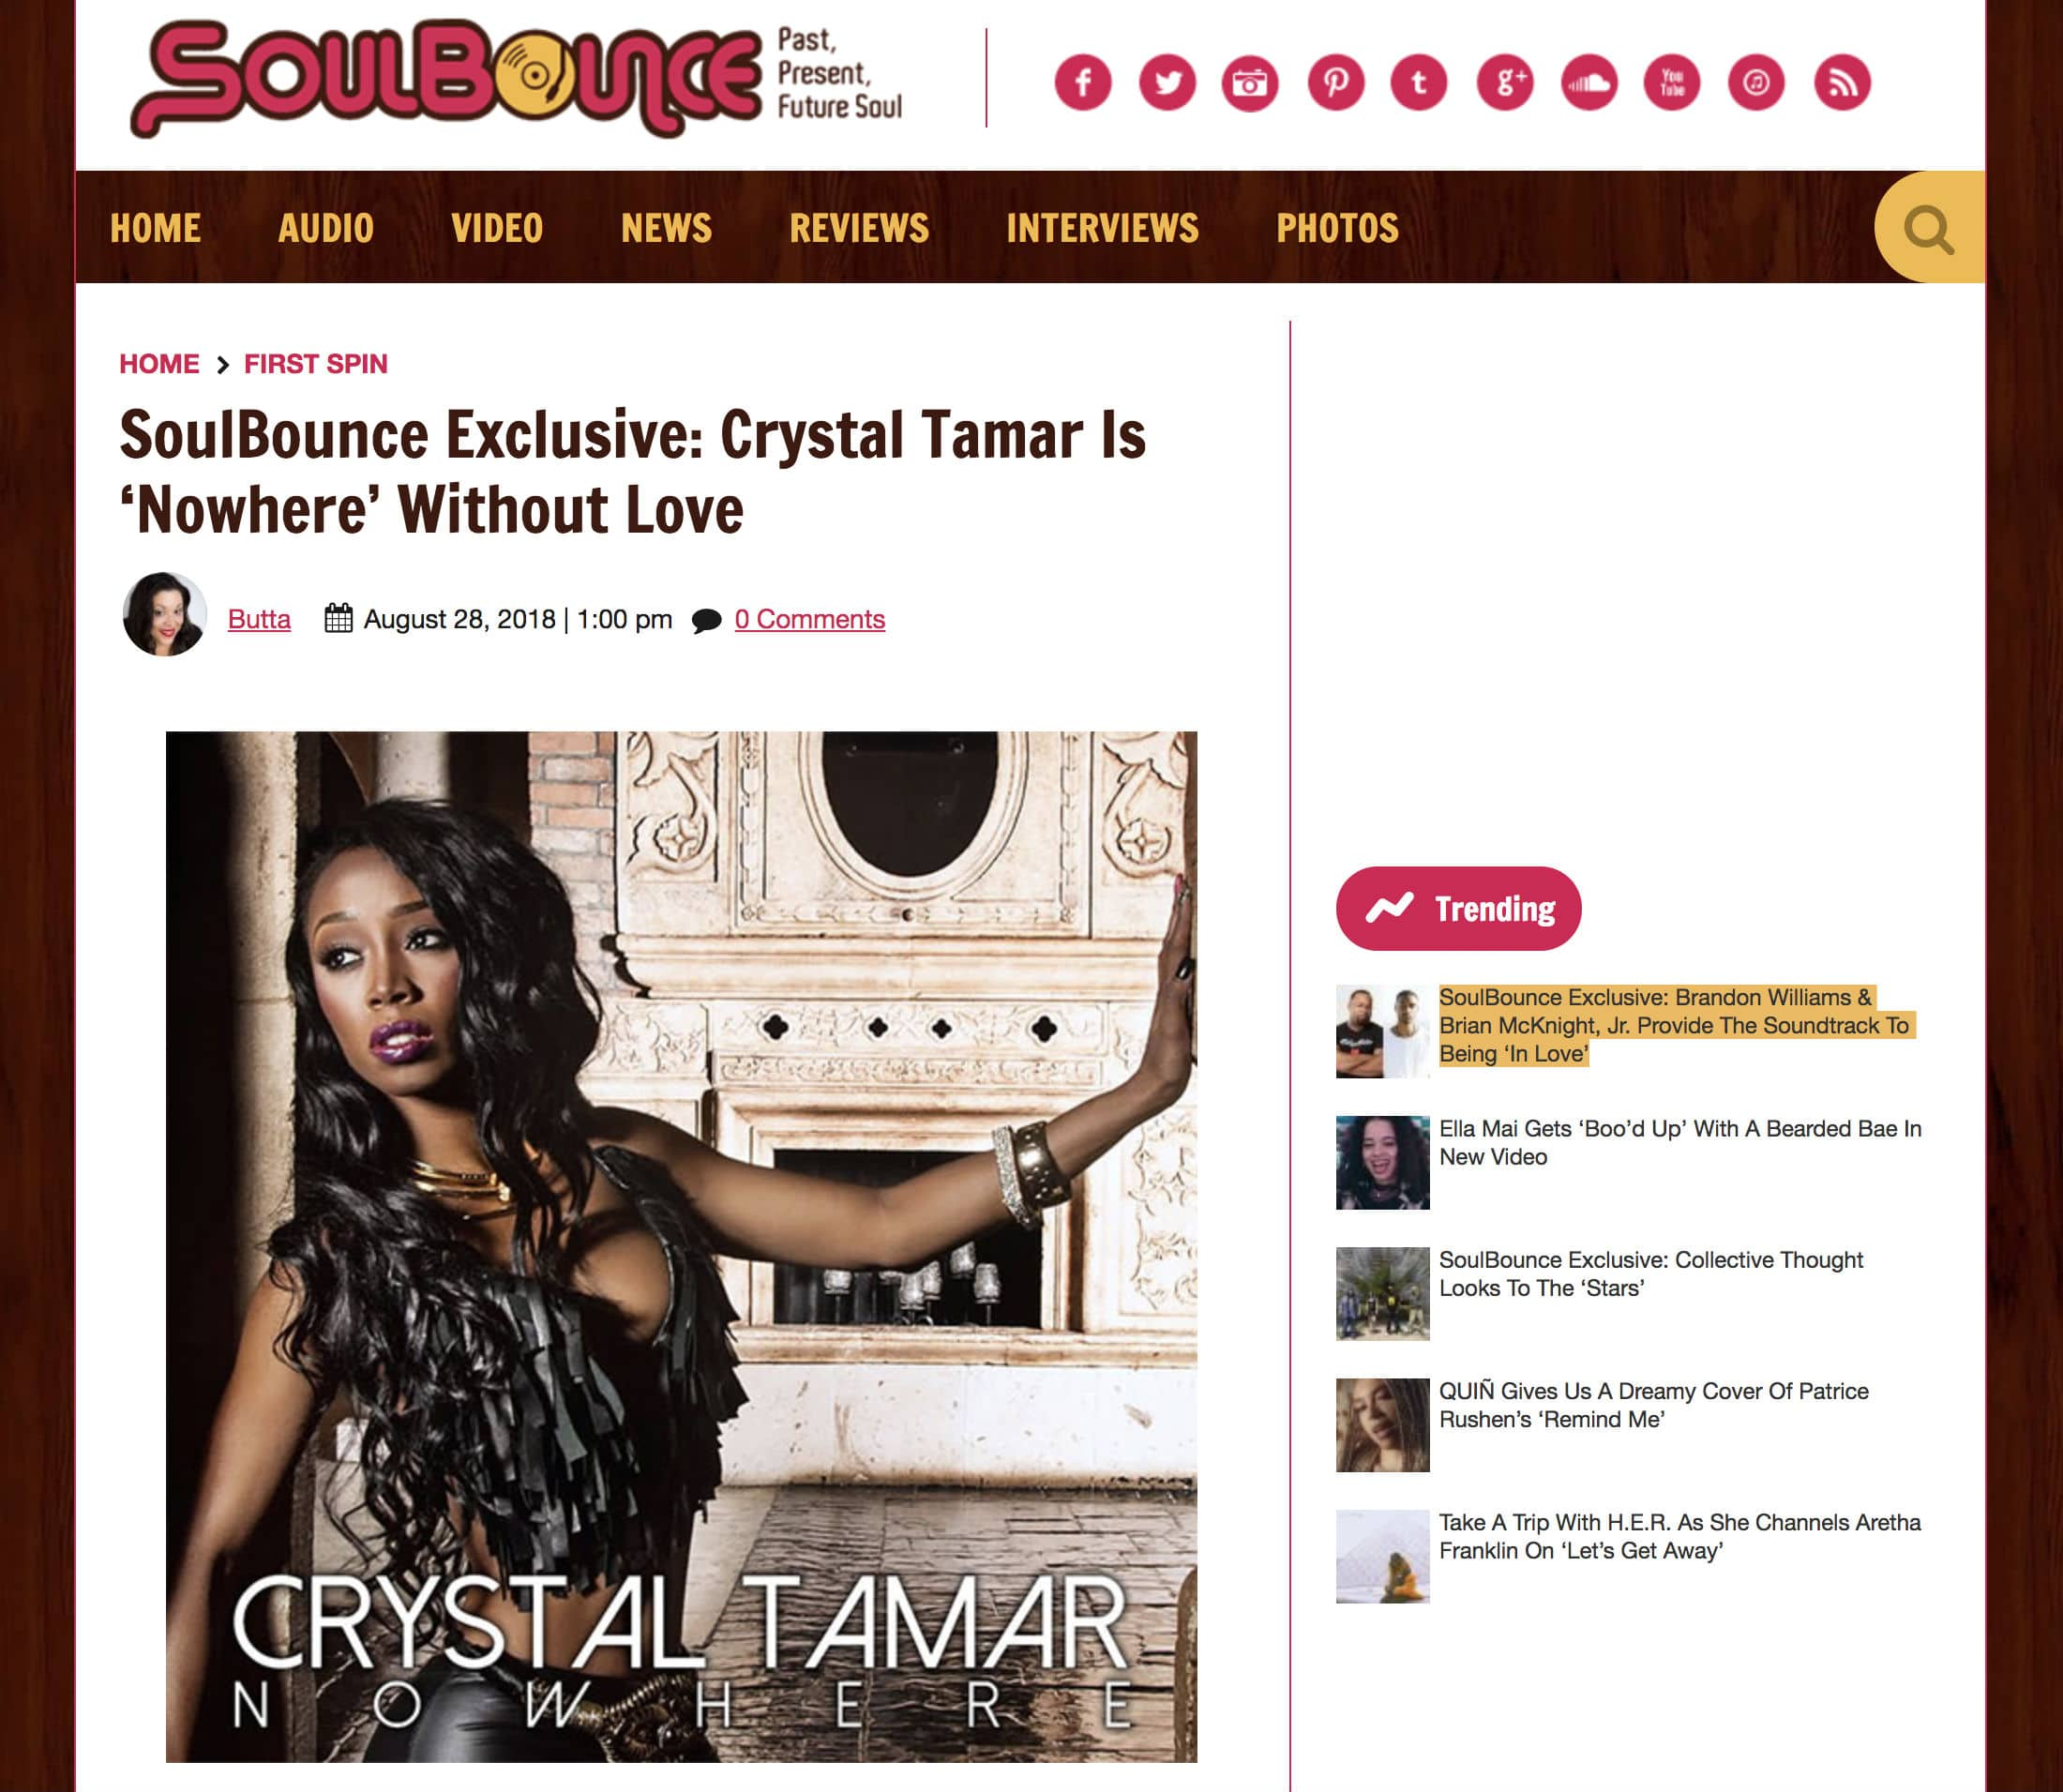 SoulBounce Exclusive - Nowhere by Crystal Tamar